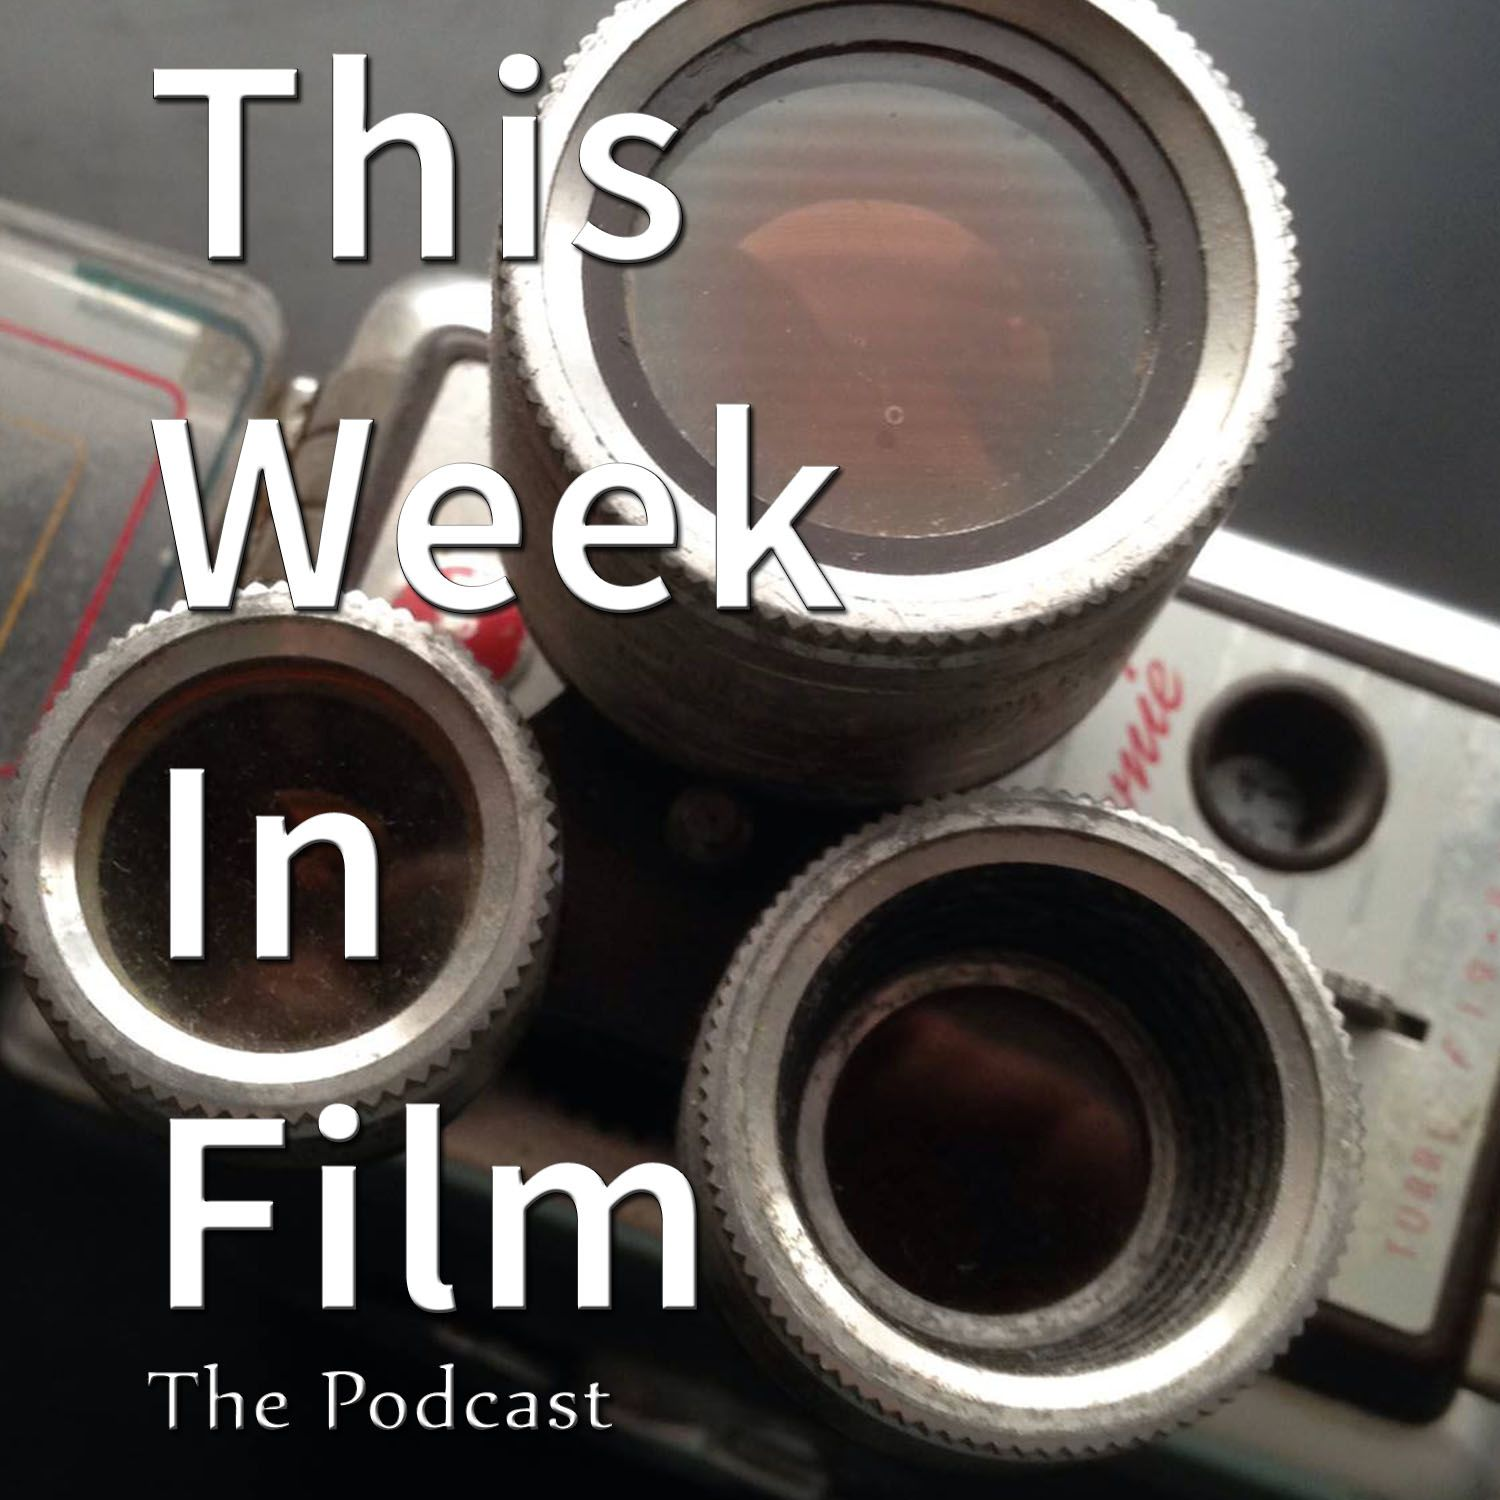 This Week In Film Podcast show art